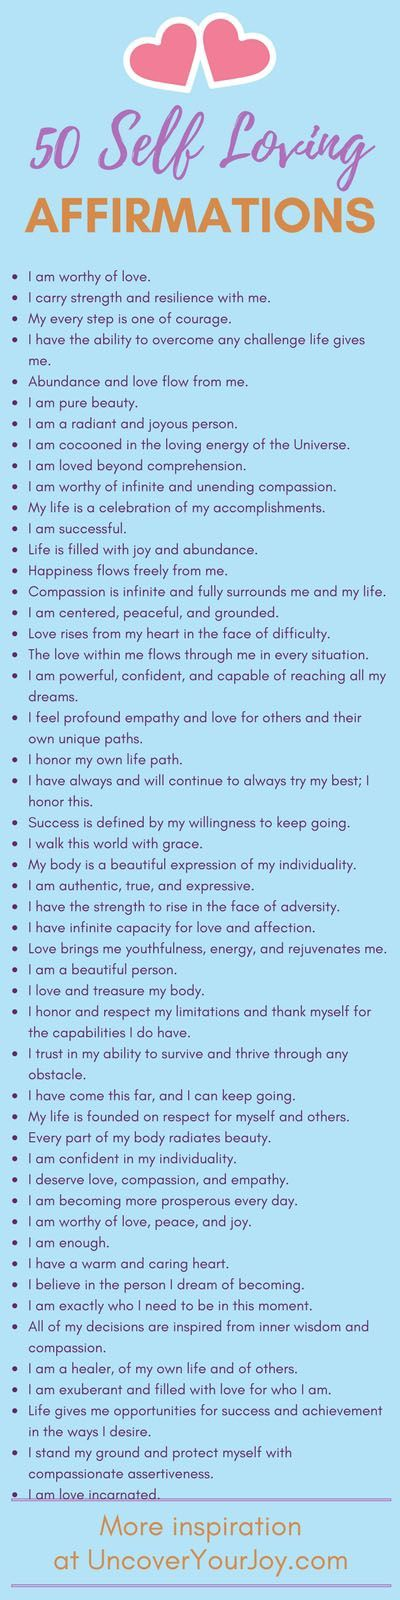 50 affirmations for self-love. Inspiring resources, quotes, and more for happiness and joy at